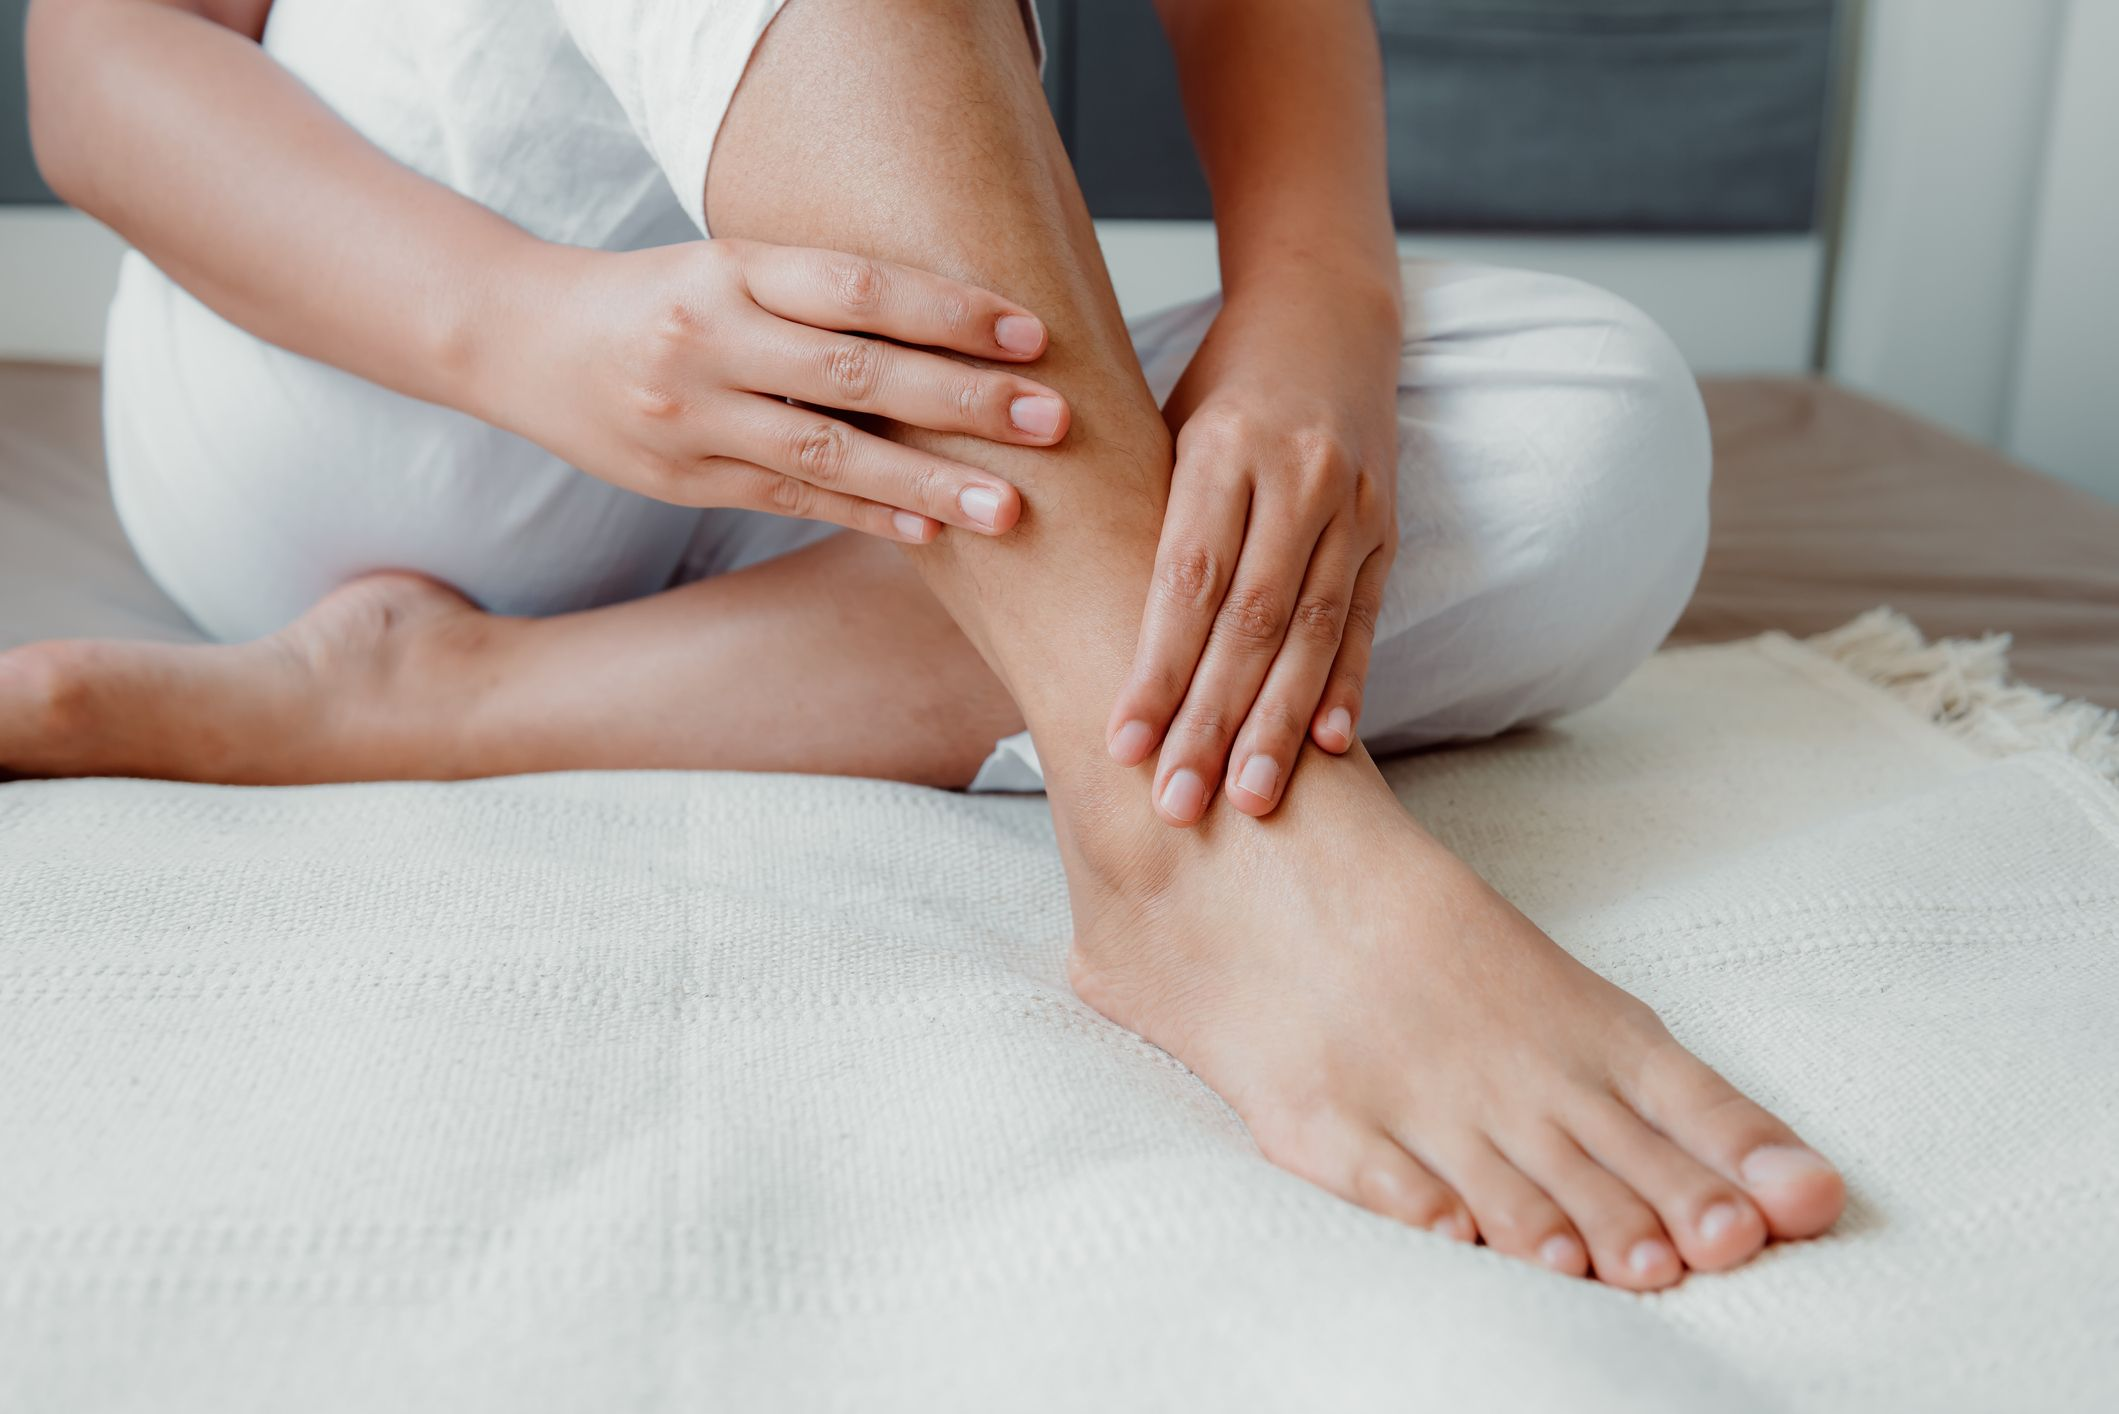 7 Reasons For Tingling In Your Feet Why Are My Feet Tingling